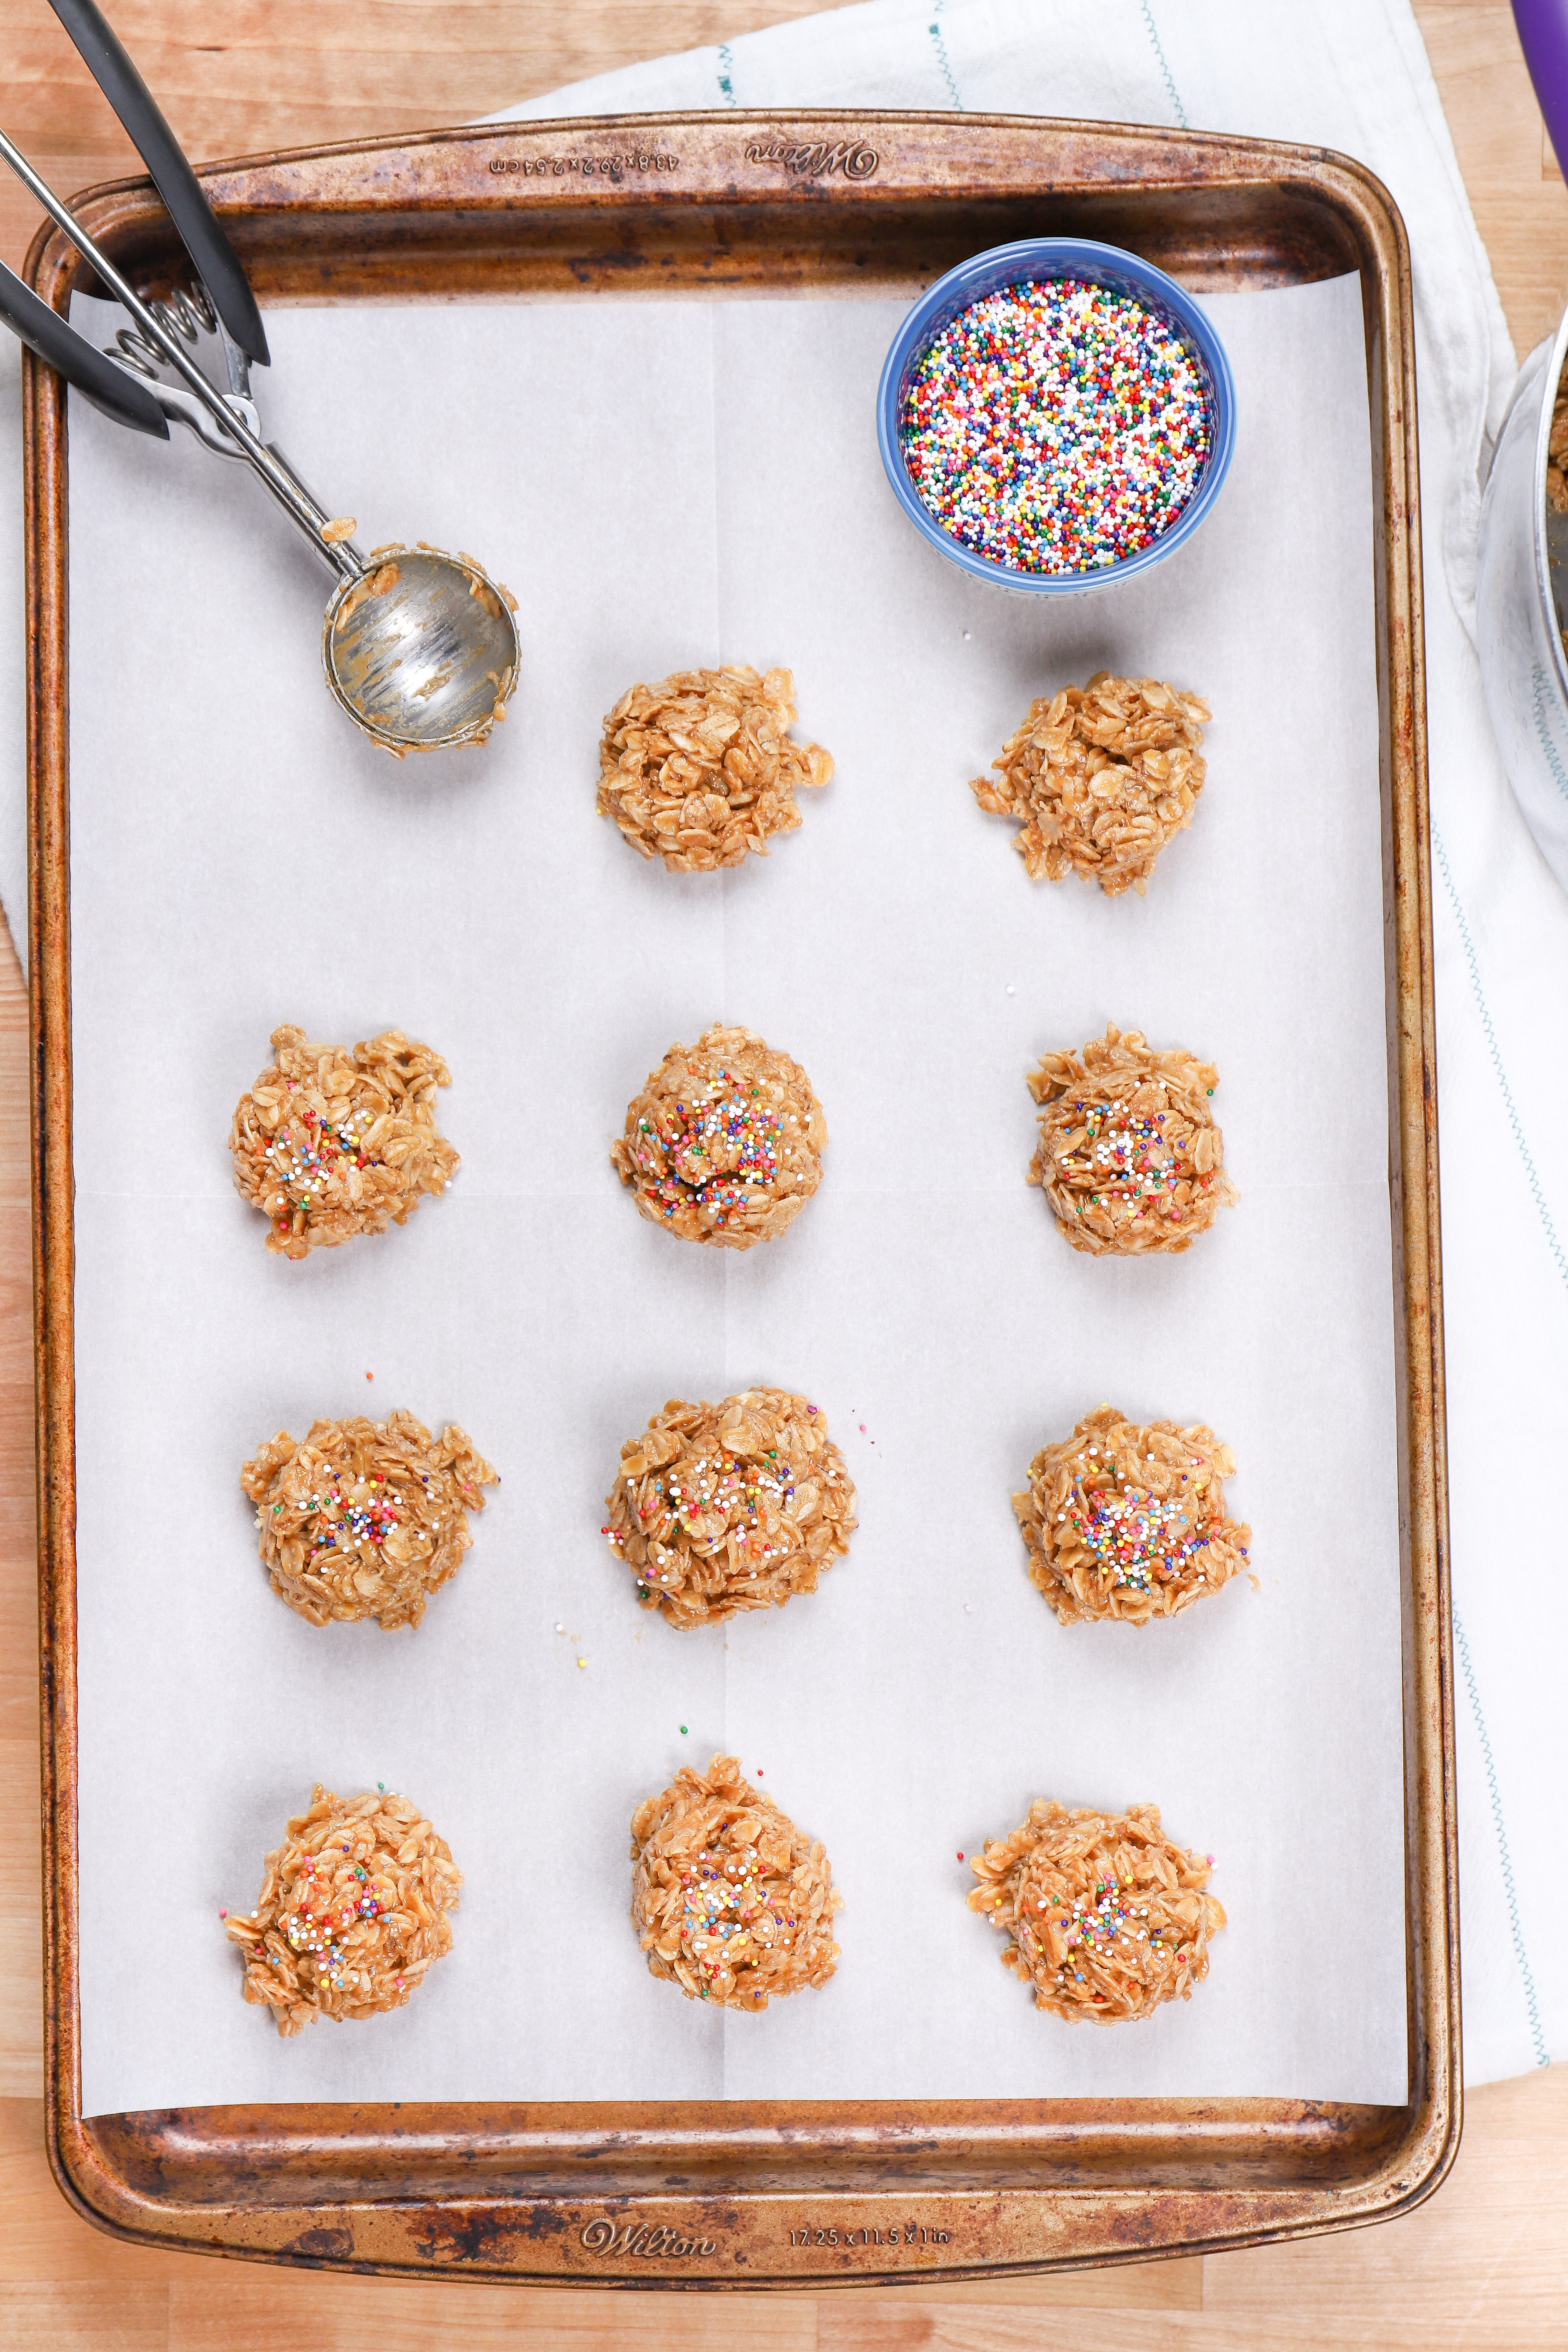 Putting peanut butter no bake cookies on a baking sheet with a cookie scoop